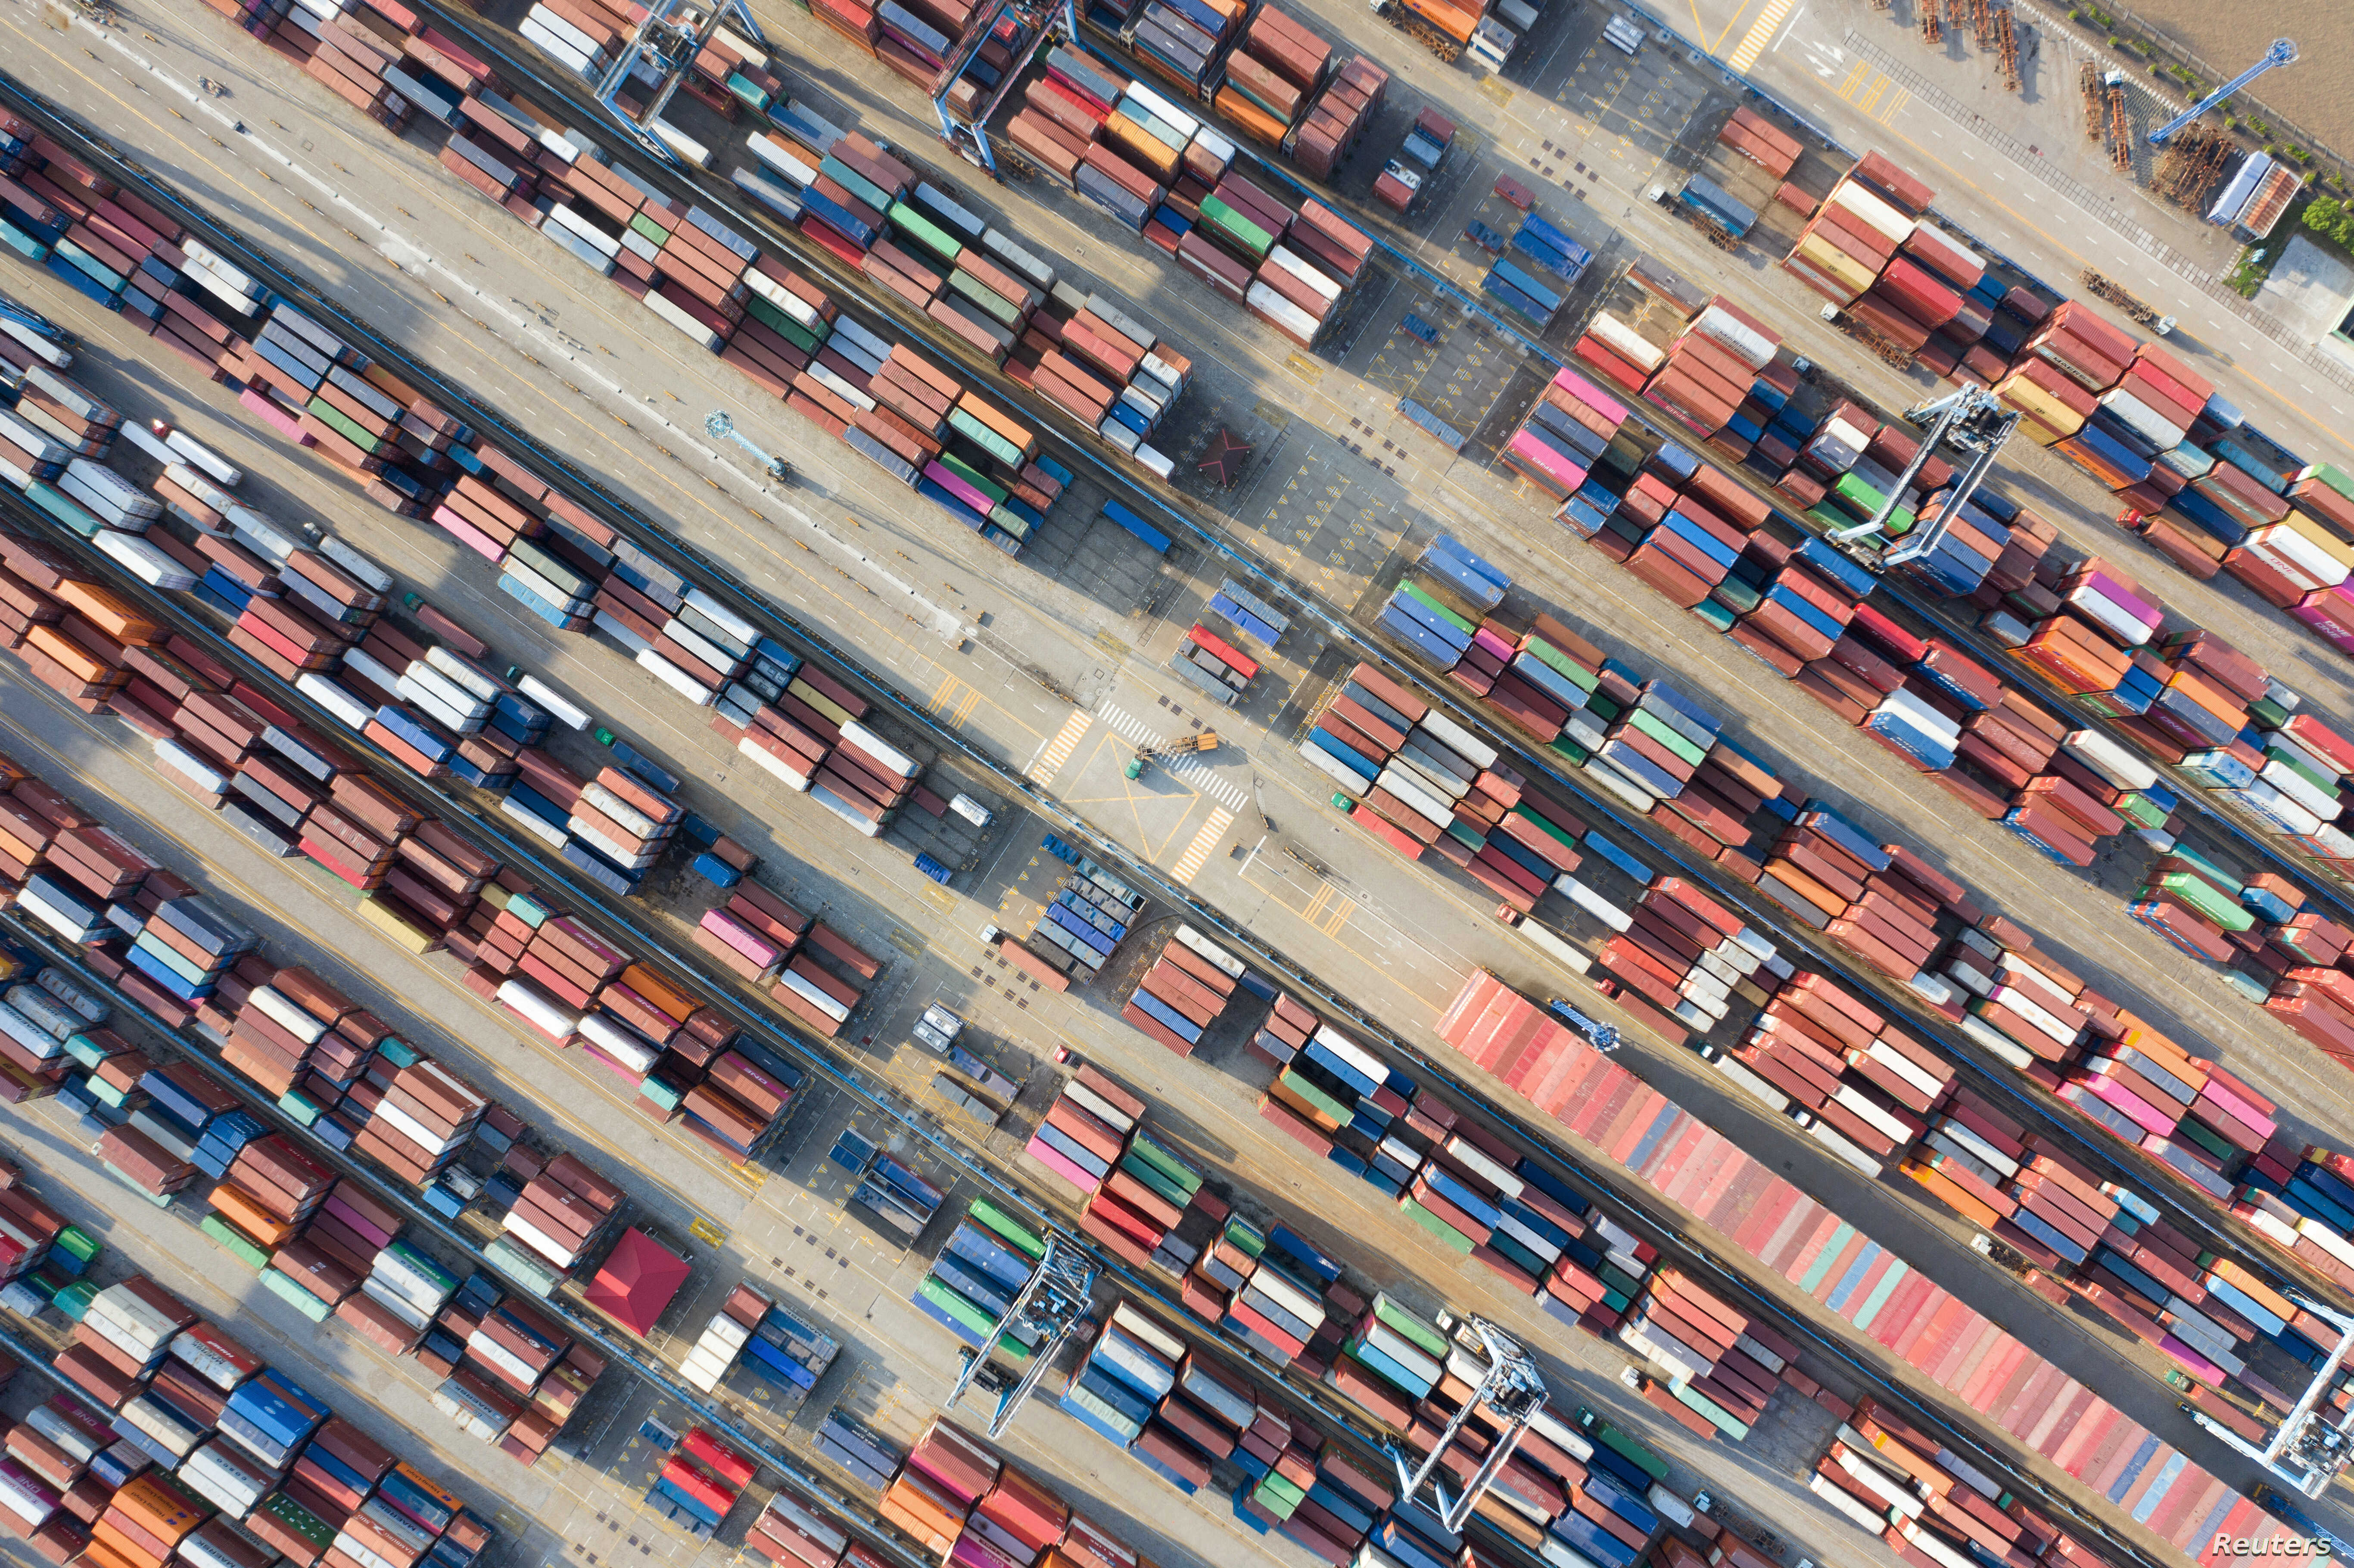 Containers are seen at a port in Ningbo, Zhejiang province, China, May 28, 2019.